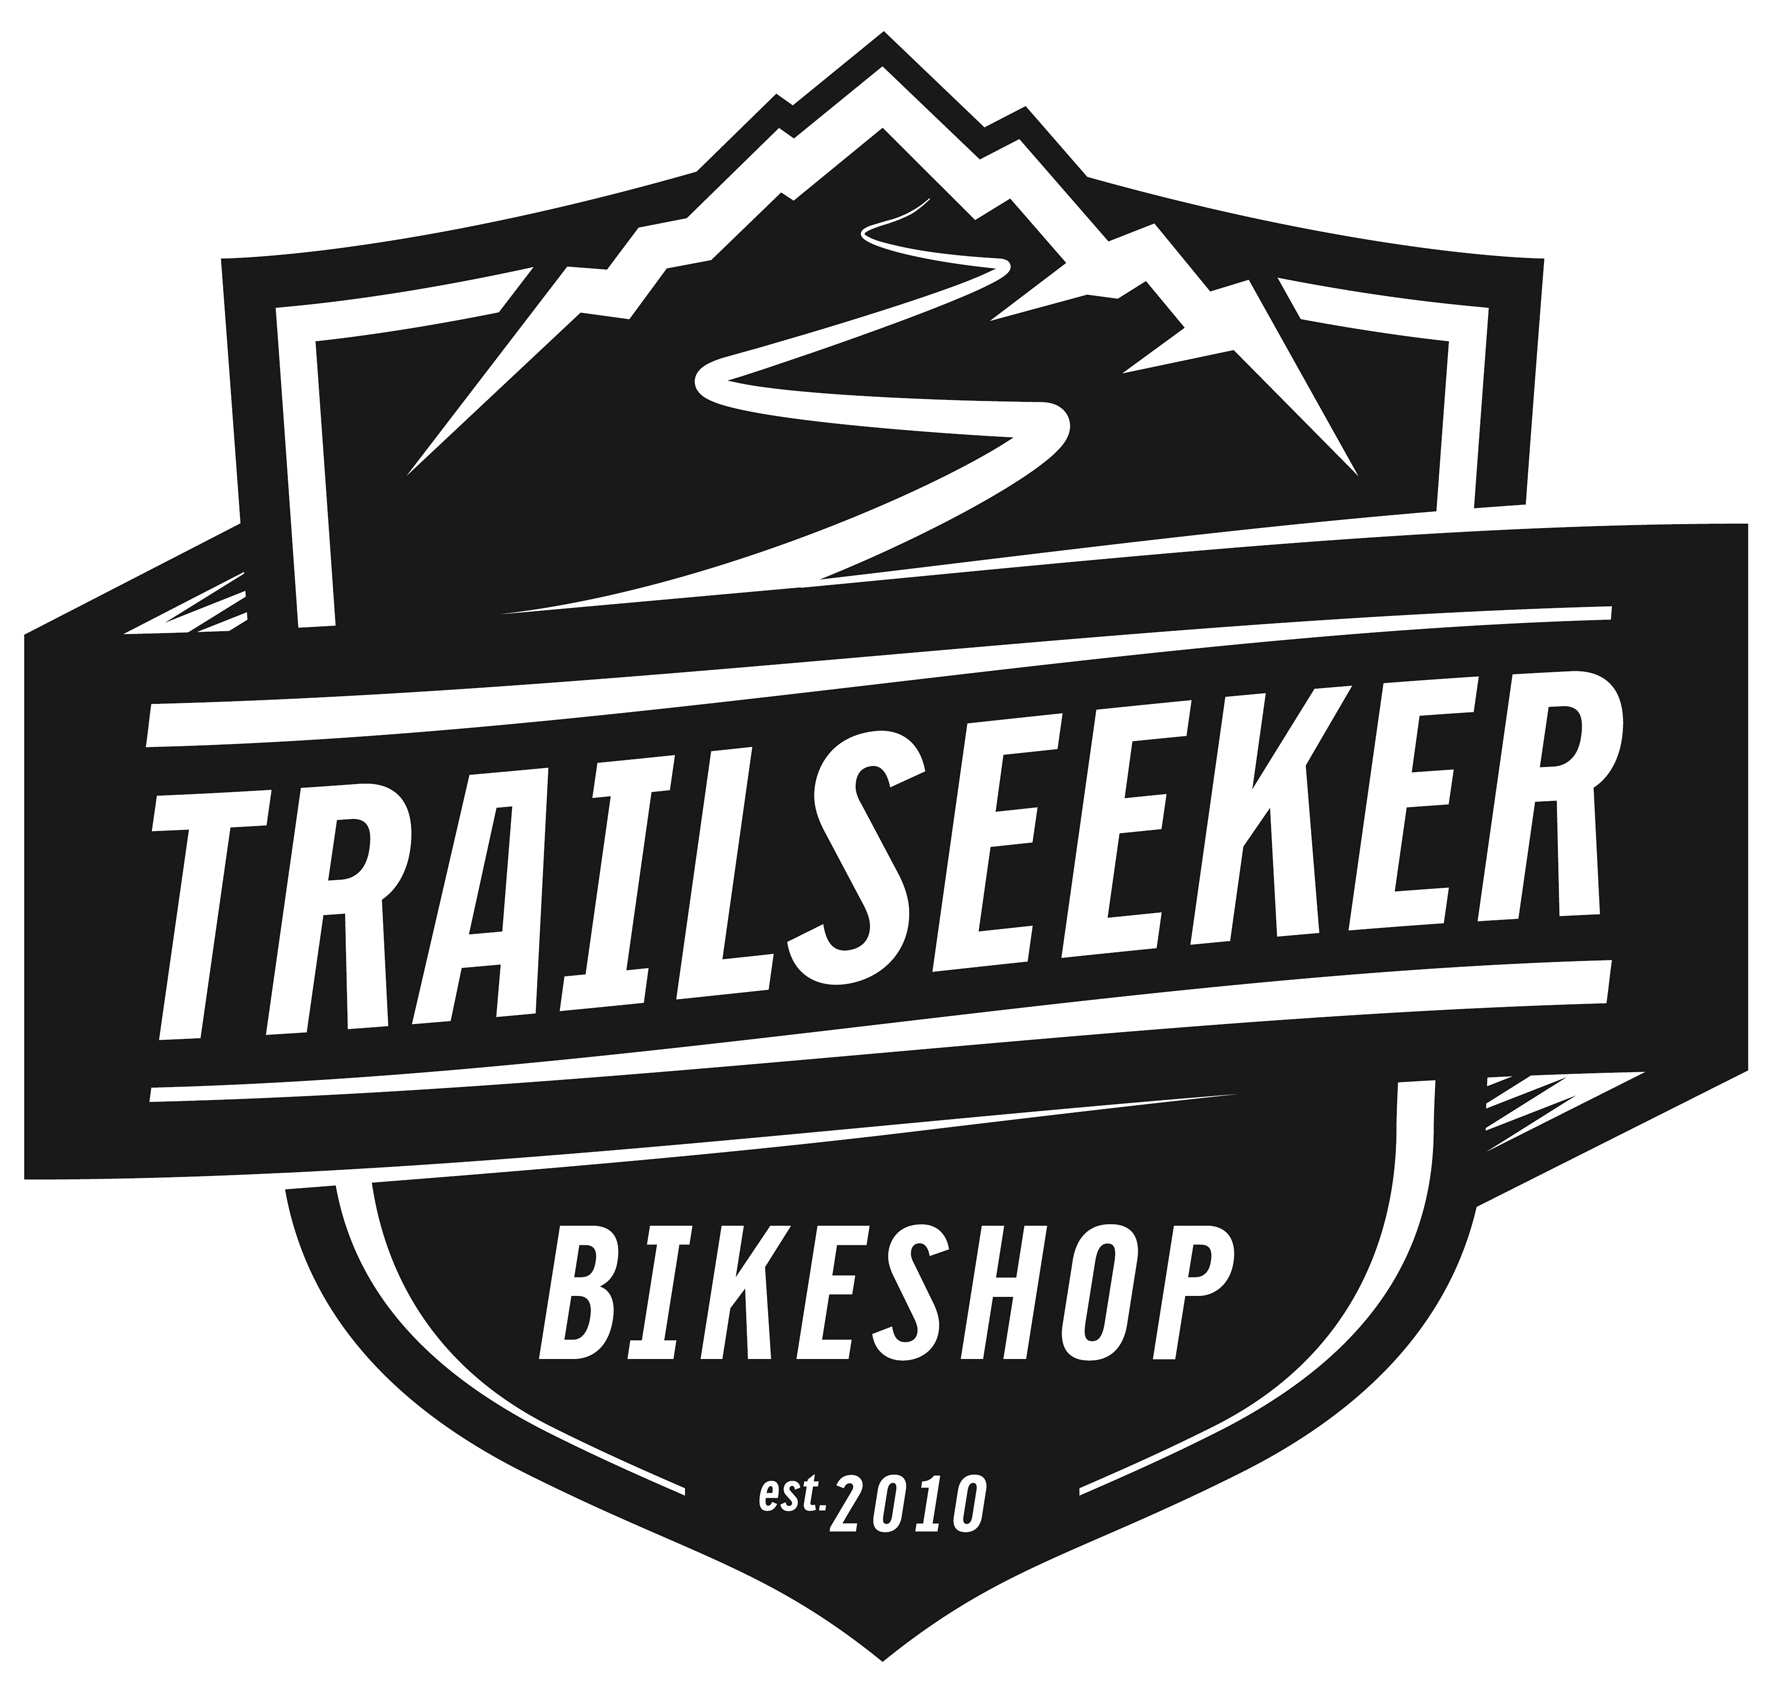 Logo Trailseeker Bikeshop